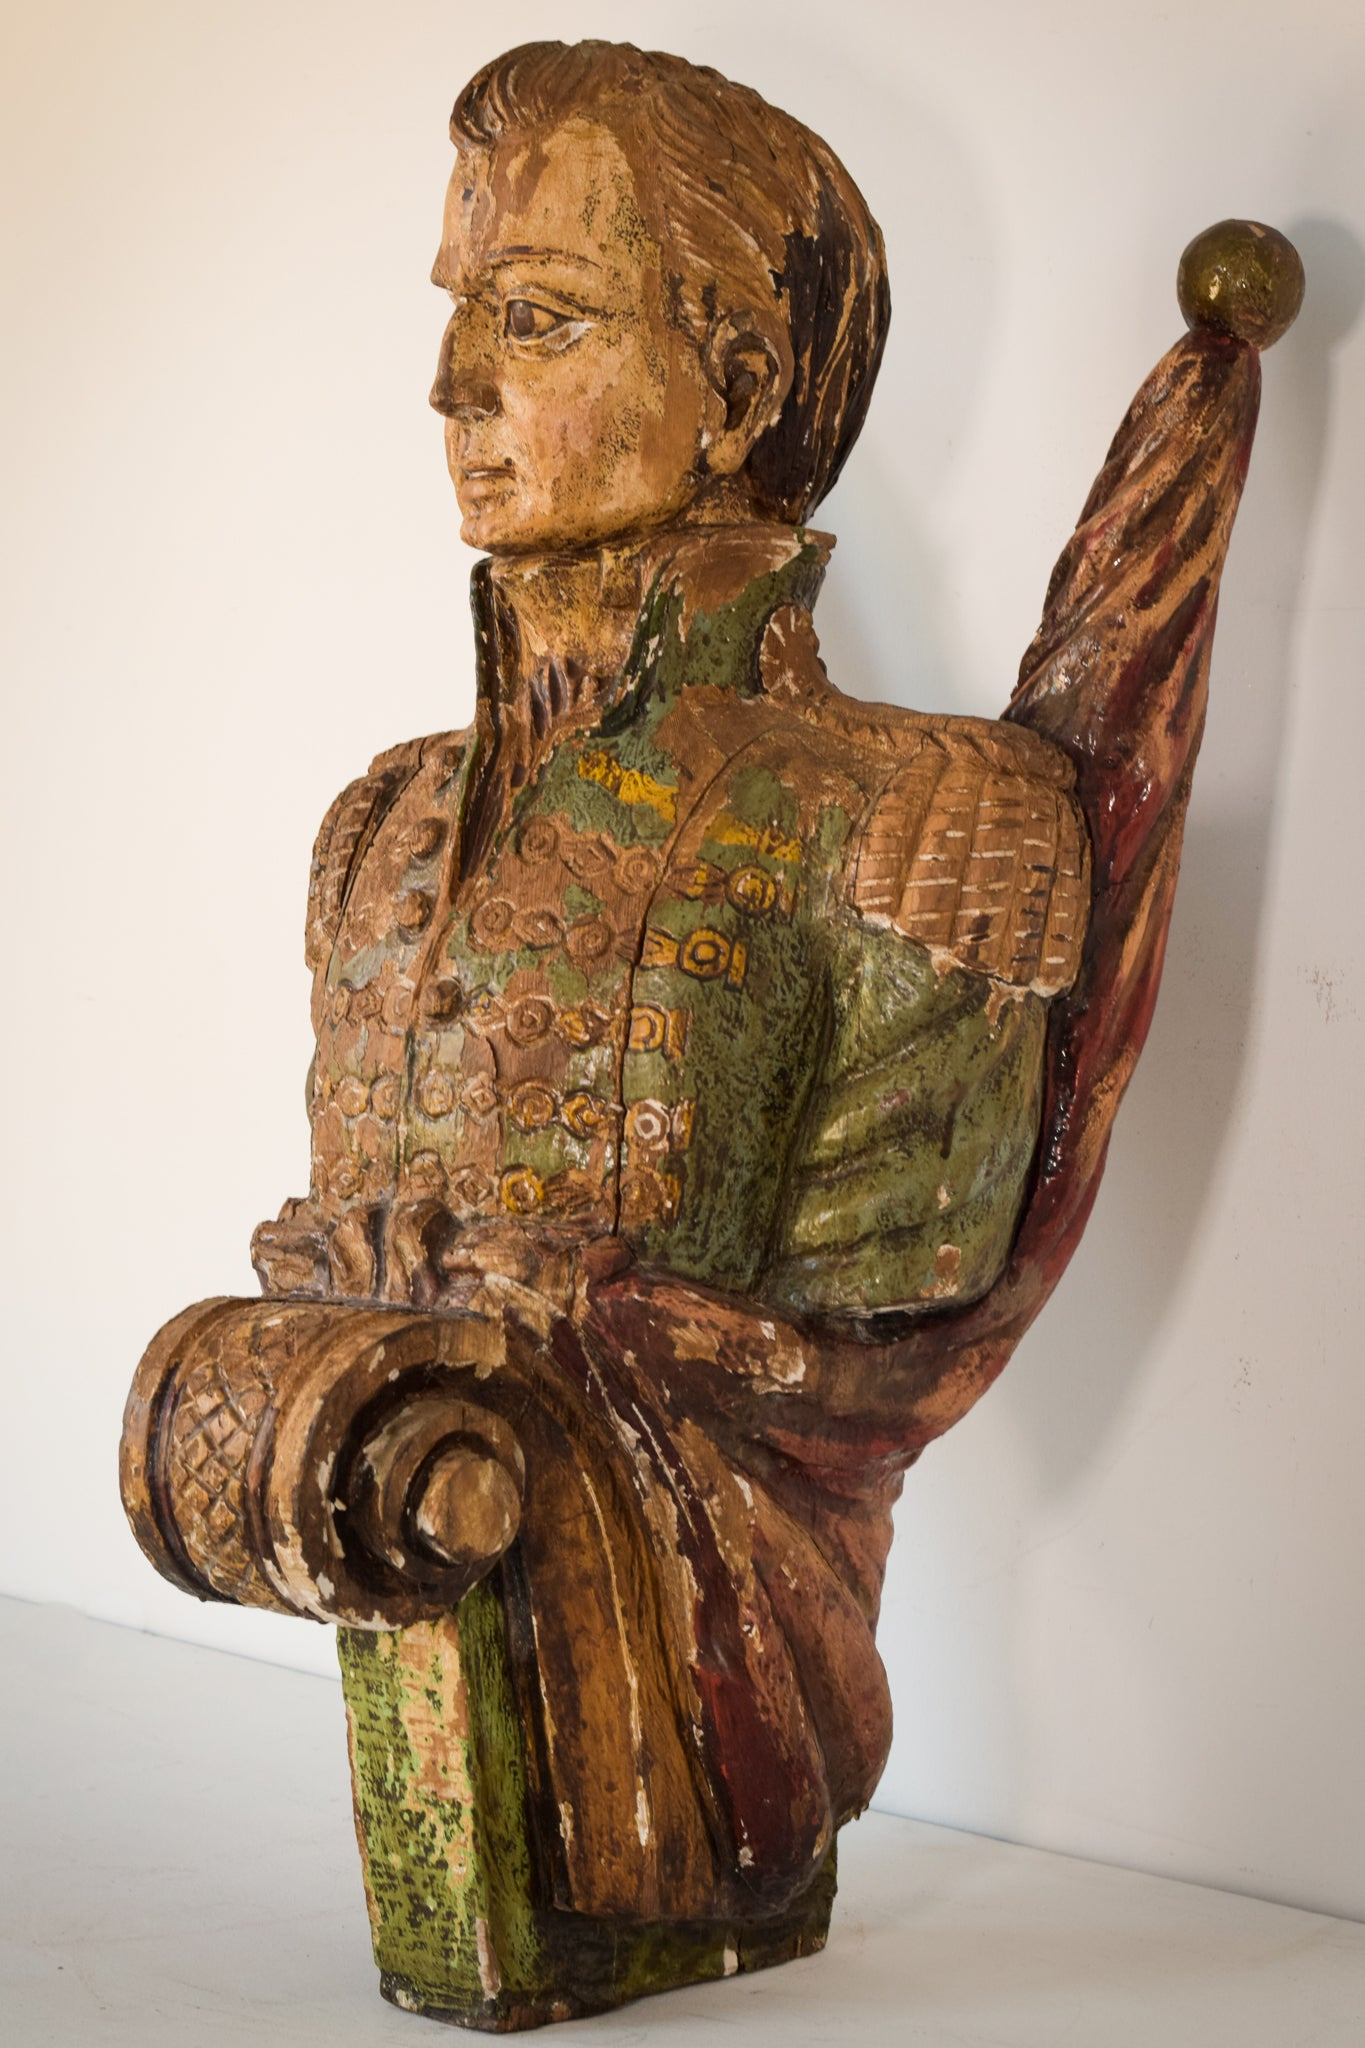 Large Polychromed Interesting Carved Wooden Figure in the form of a ships officer or admiral rank figure head